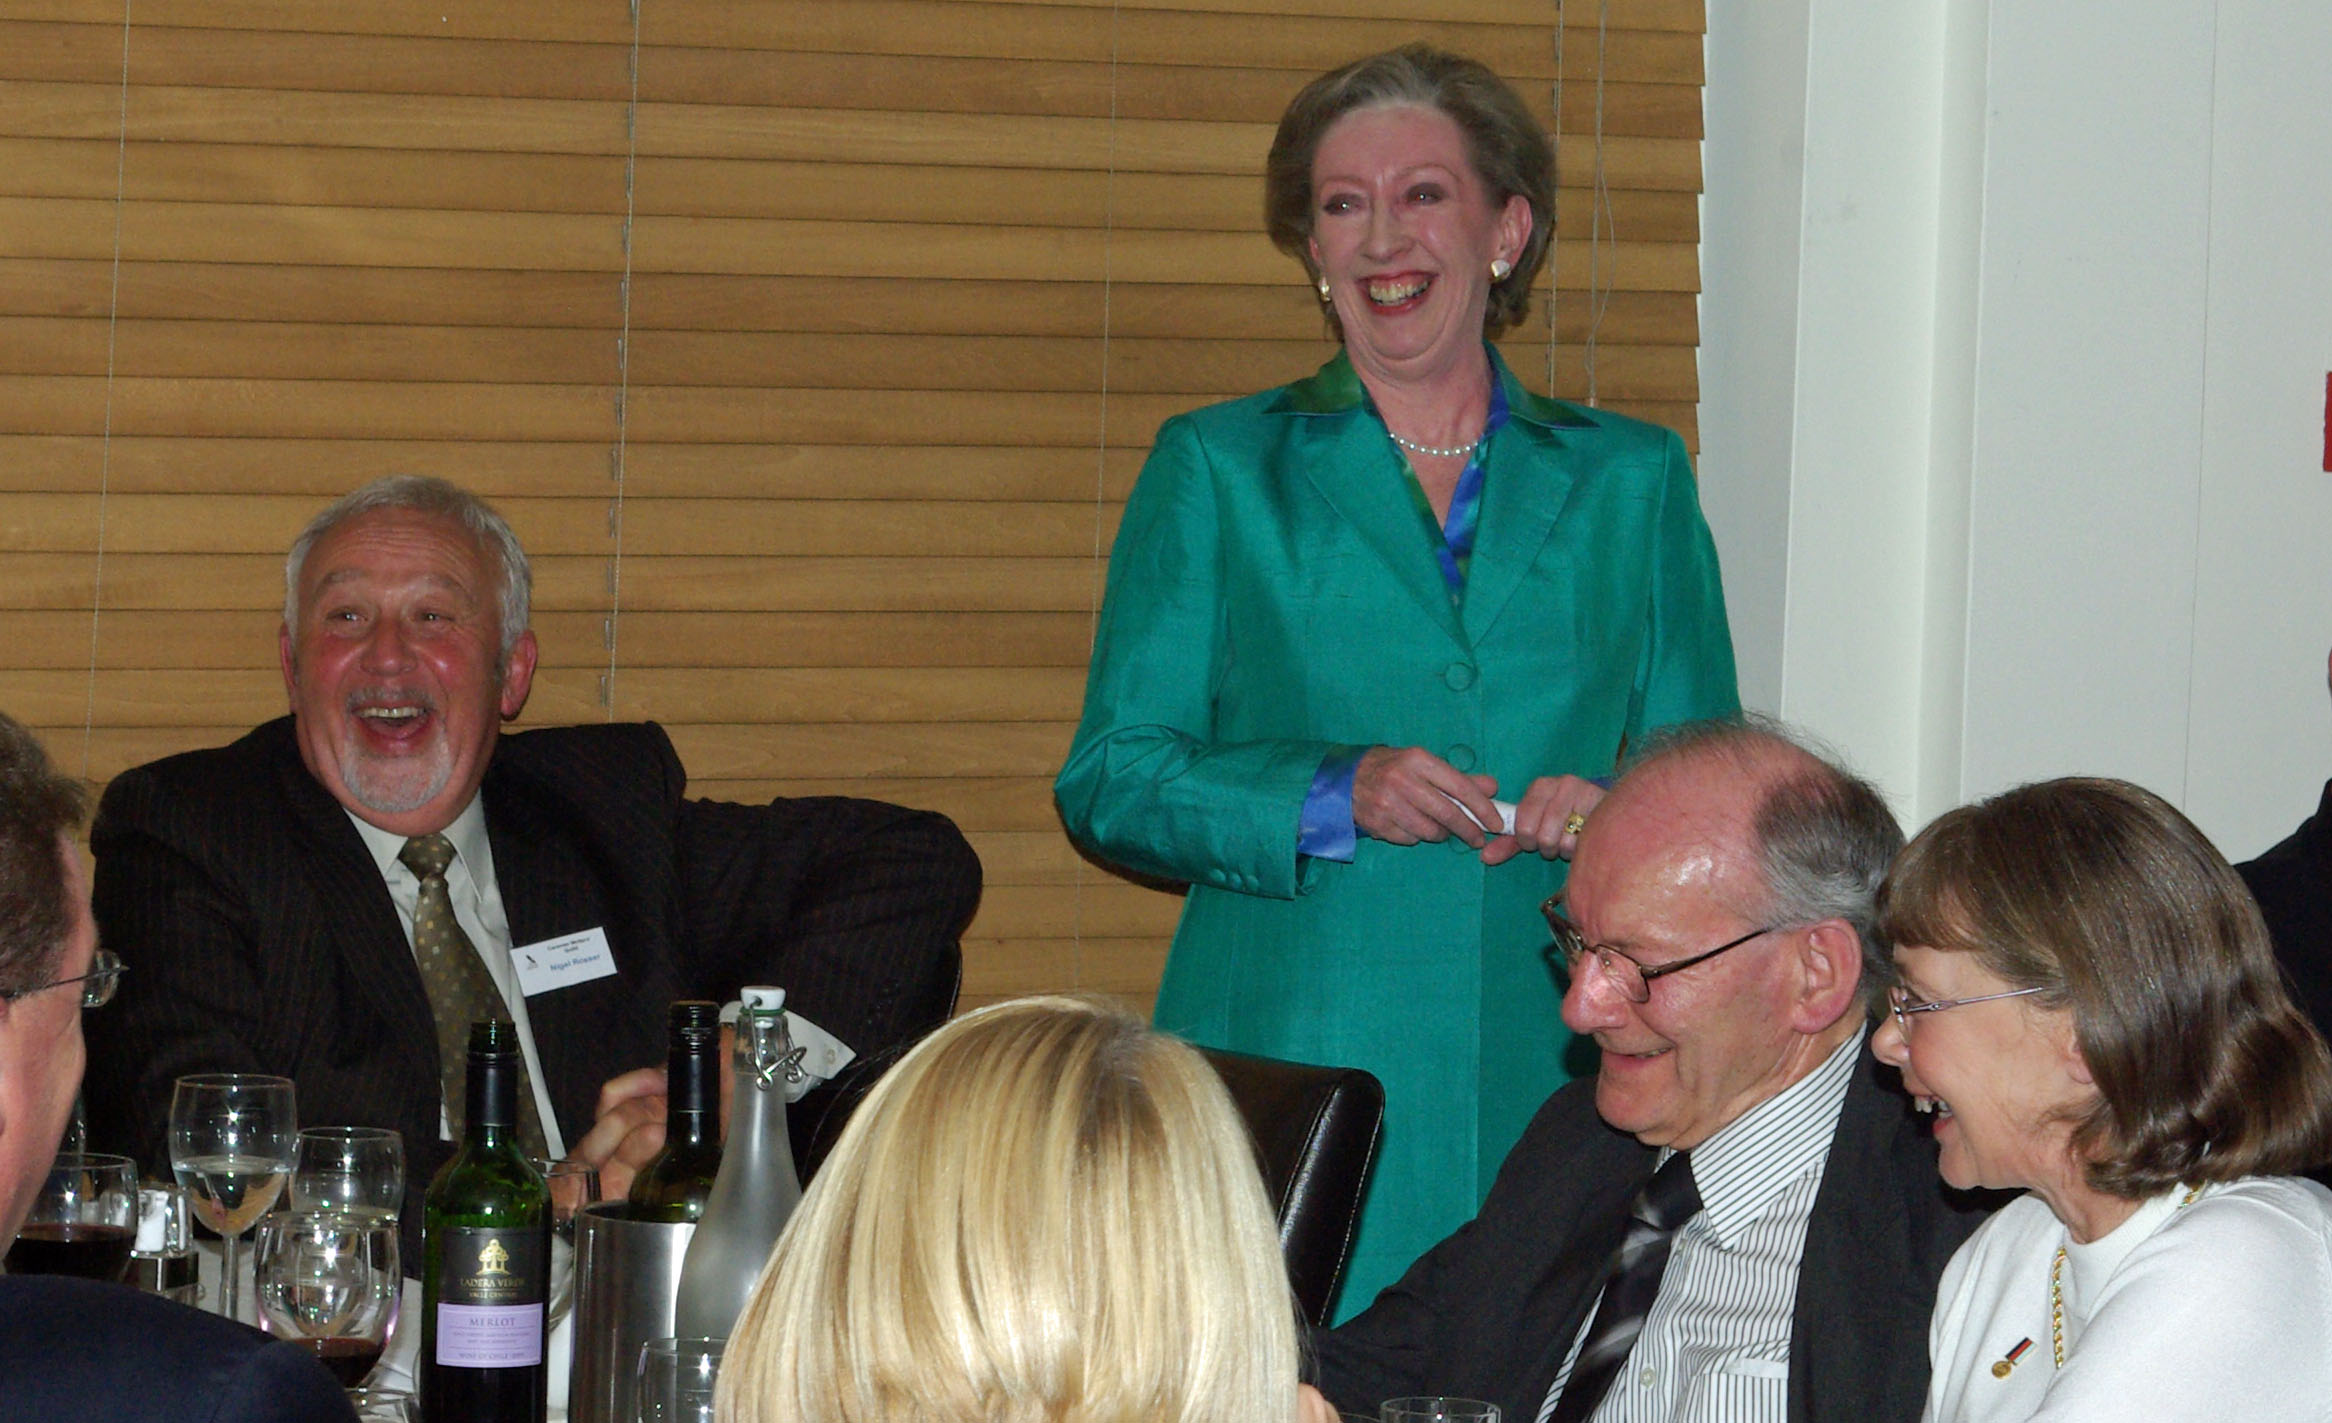 CWG history - Rt Hon Margaret Beckett MP at the October 2010 Guid dinner with CWG Chairman Nigel Rosser (left) and husband Leo (right)